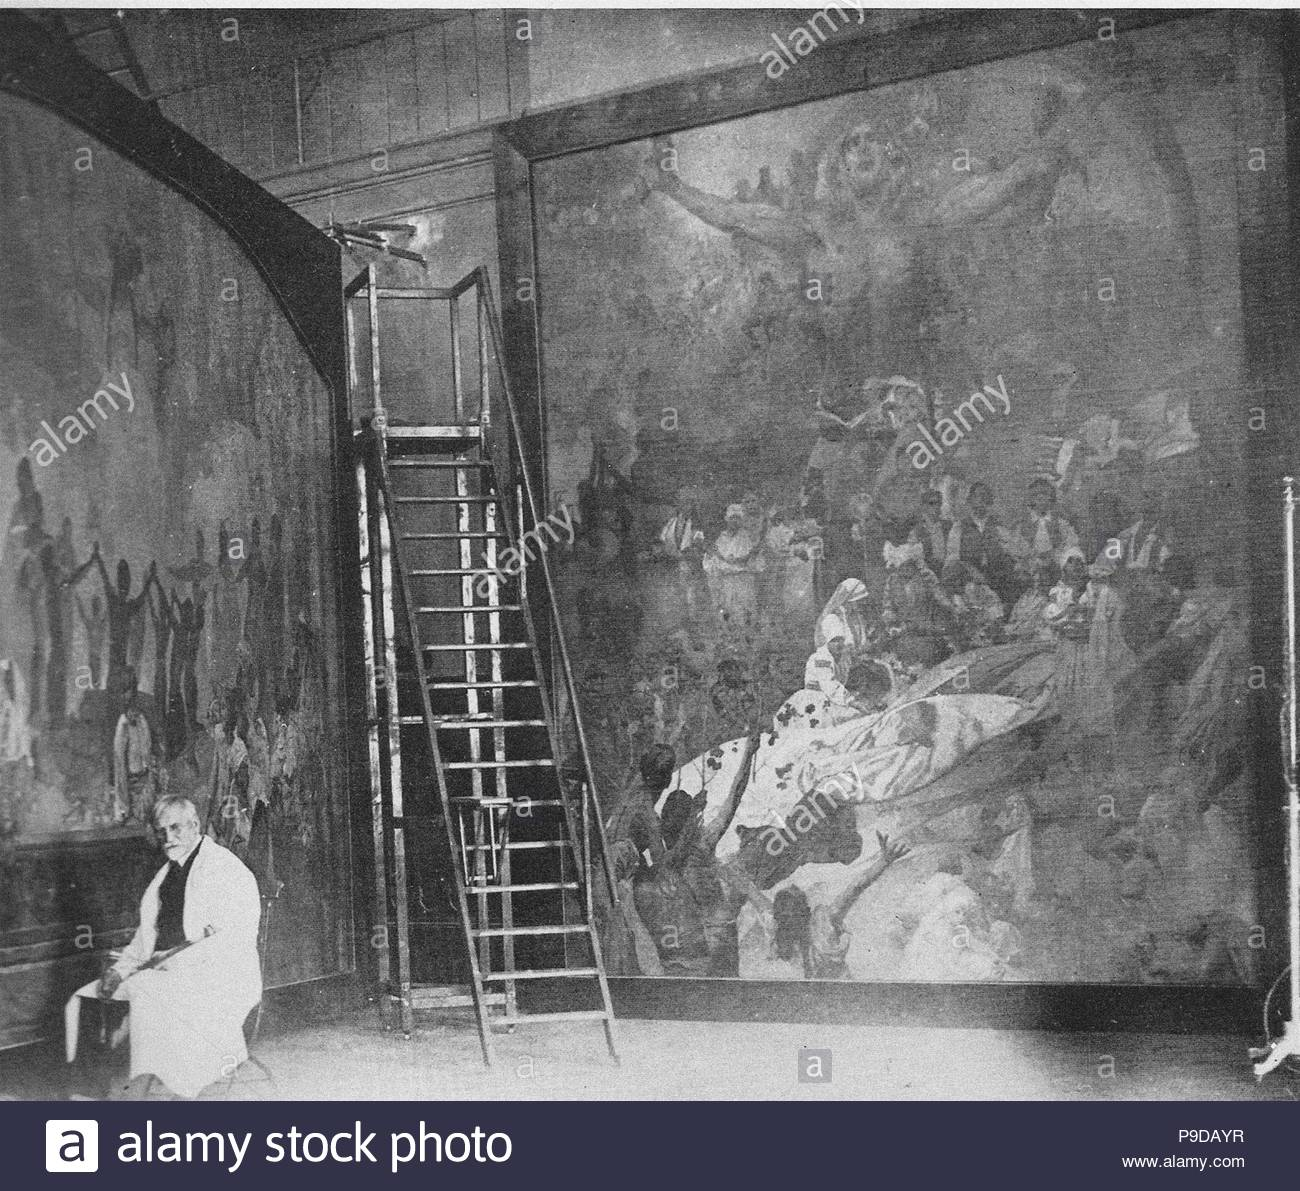 Alfons Mucha working on the Slav Epic at the Castle Zbiroh. Museum: A. Mucha Museum, Prague. - Stock Image